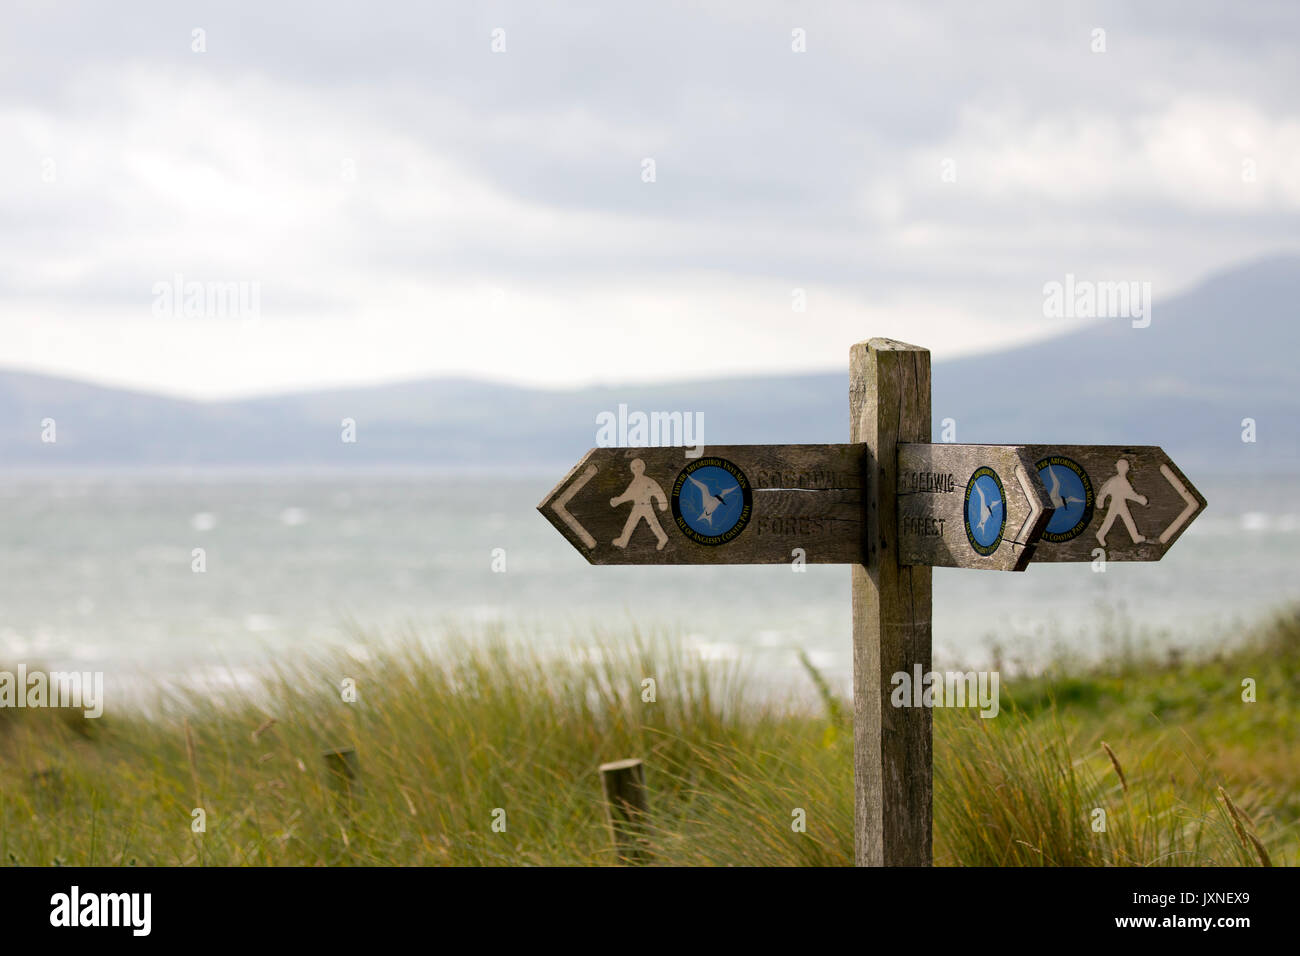 Wooden direction post way marker showing direction for Wales Coastal Path at dunes on Newborough Warrren Beach with the sea and hills in the distance - Stock Image